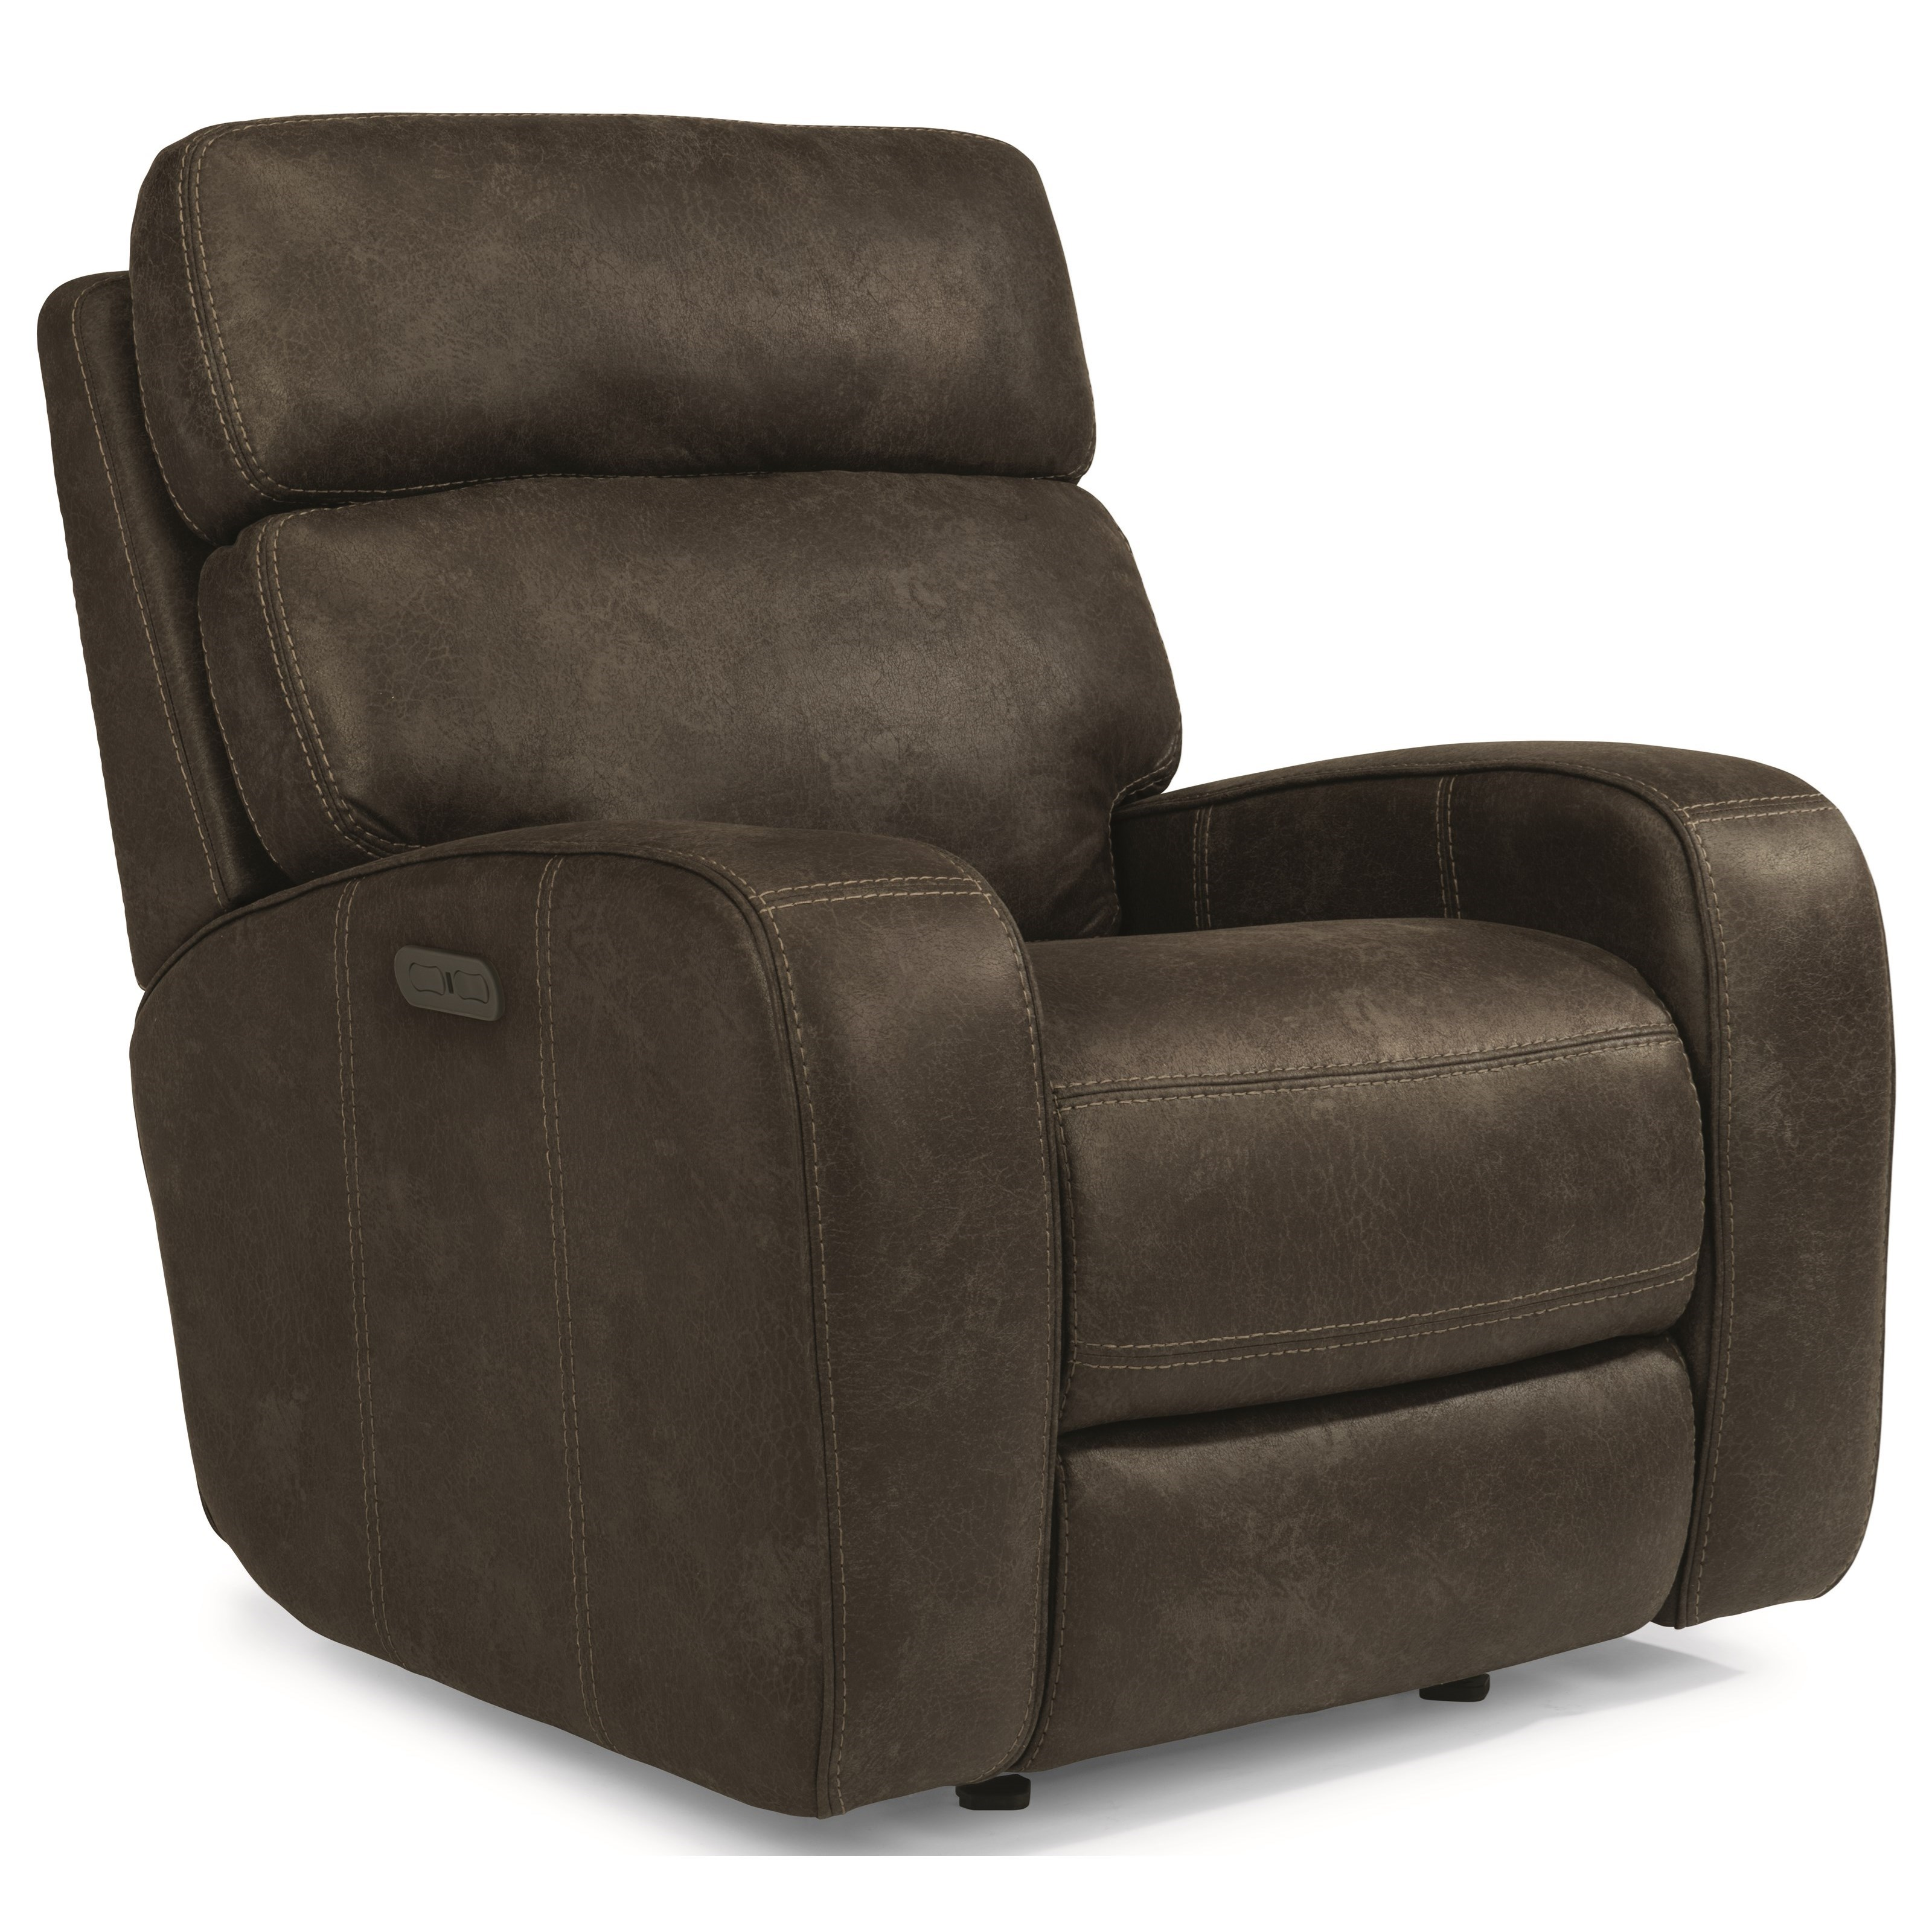 Flexsteel Latitudes-Tomkins Gliding Recliner - Item Number: 1326-54PH 01